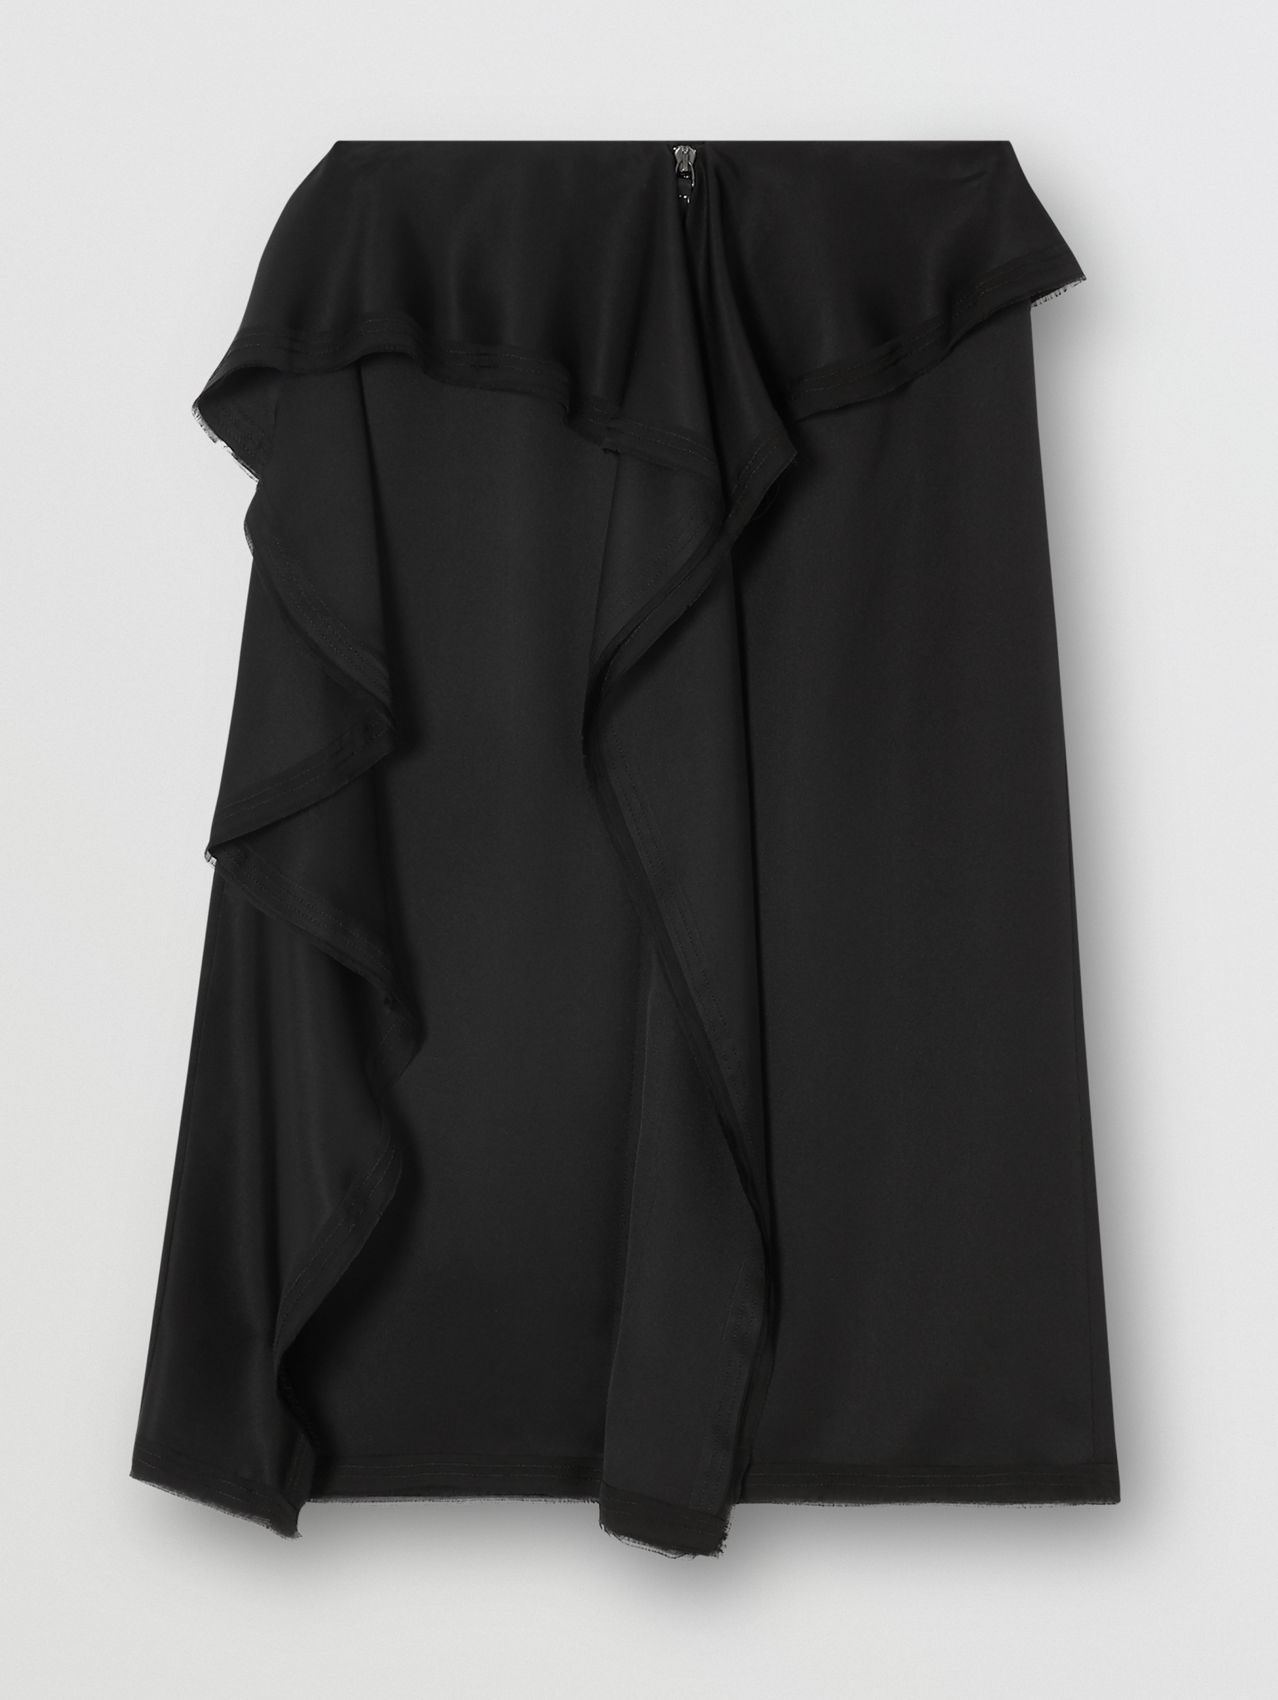 Ruffle Detail Silk Satin Pencil Skirt in Black